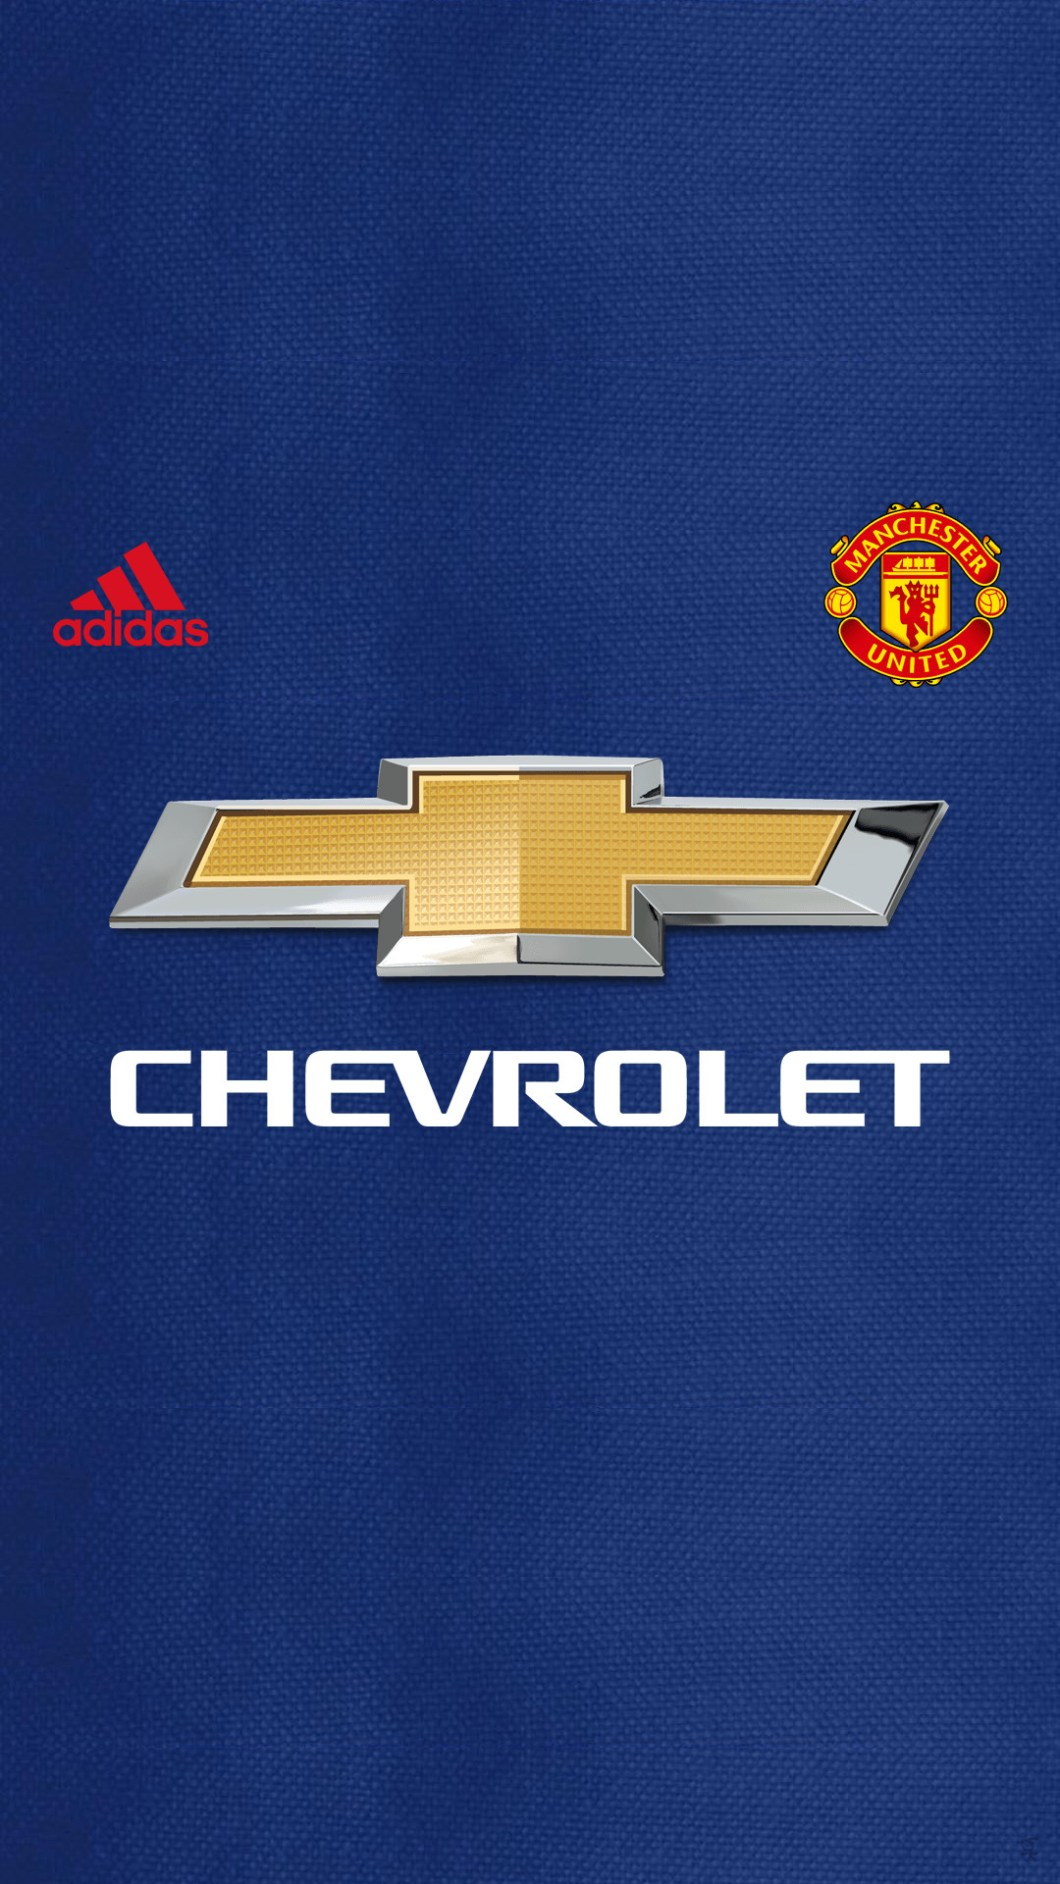 Manchester united wallpaper for iphone 6 wallpapergenk manchester united wallpaper 2018 voltagebd Images